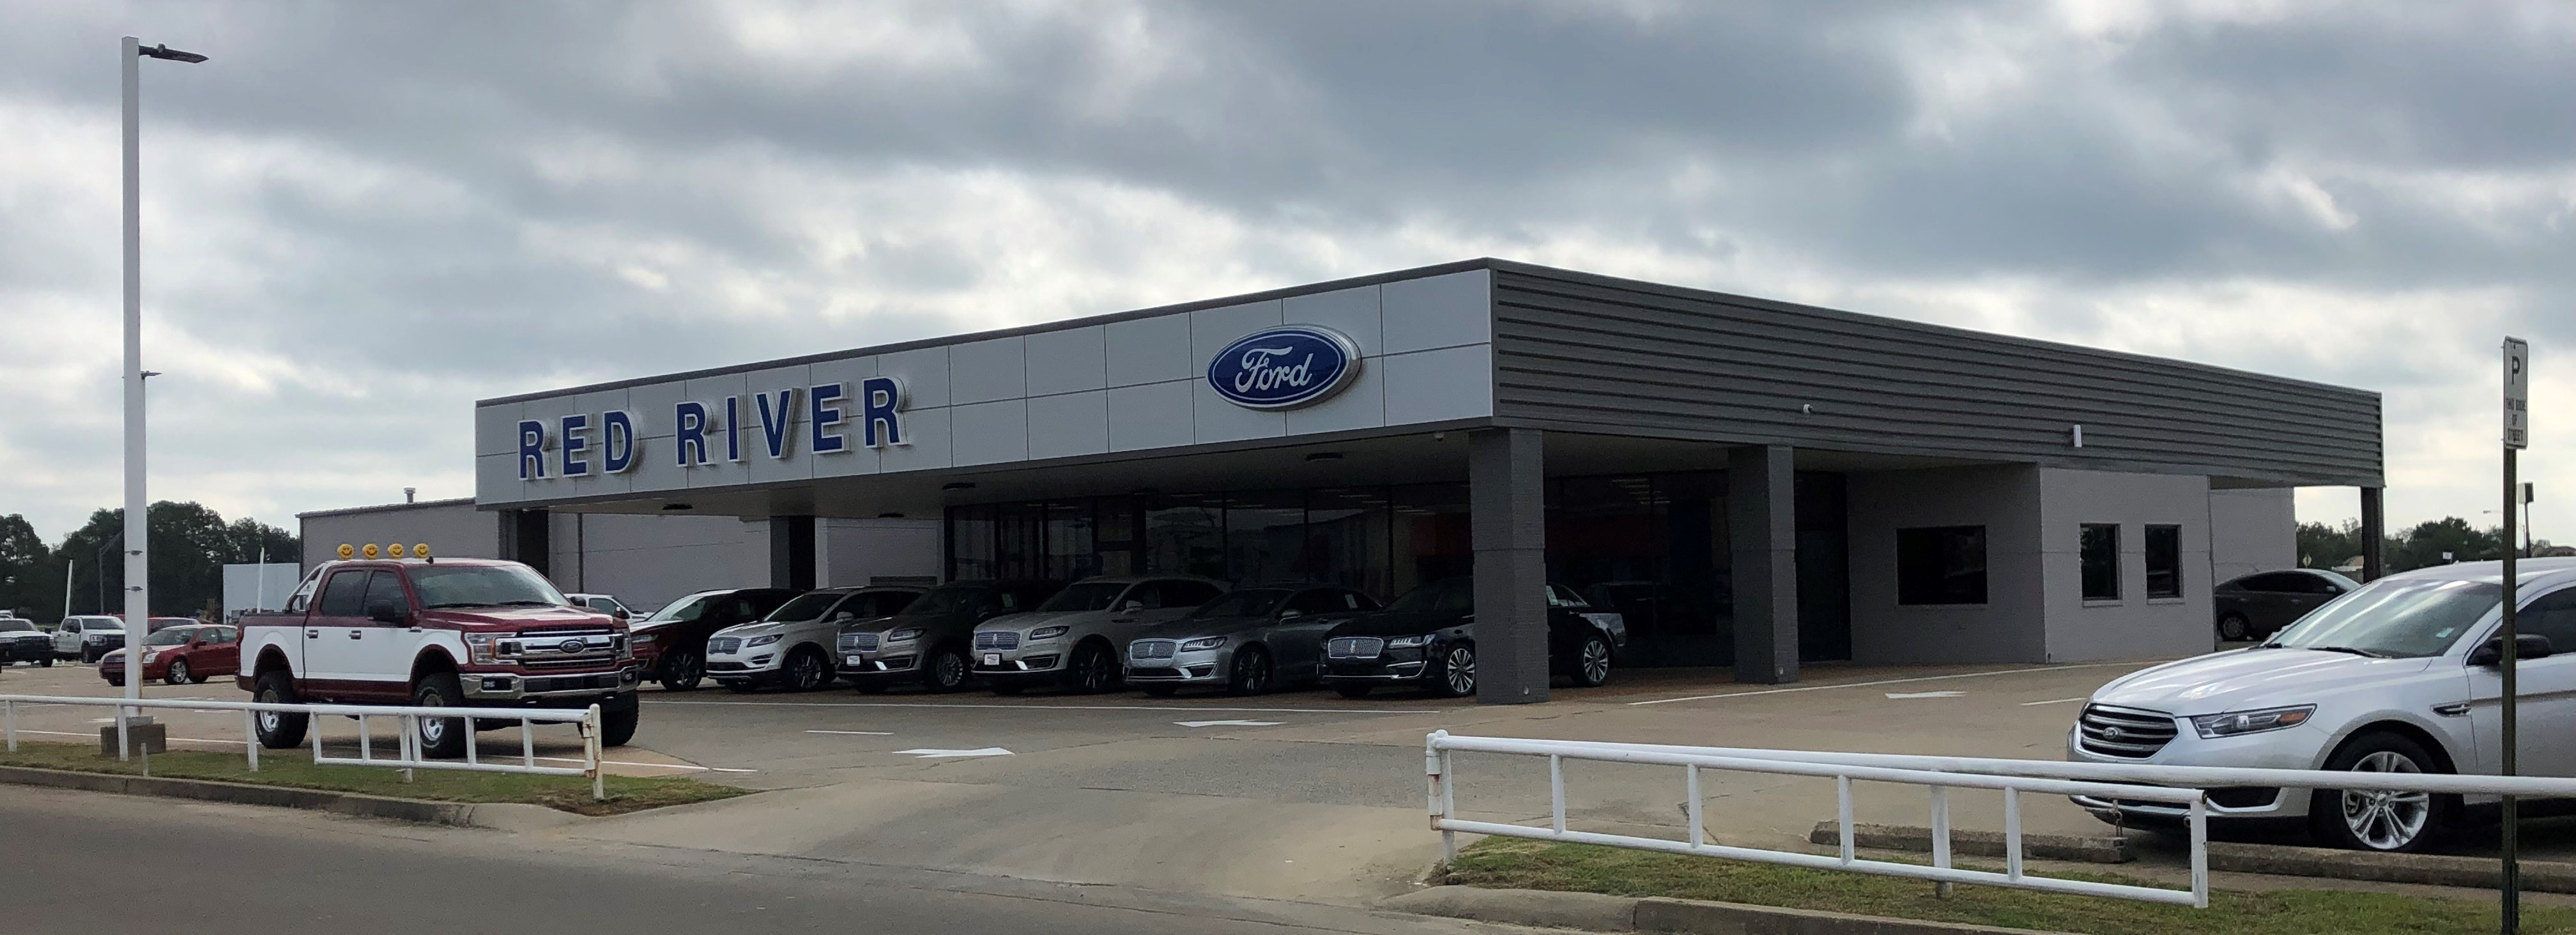 red river ford lincoln linkedin linkedin